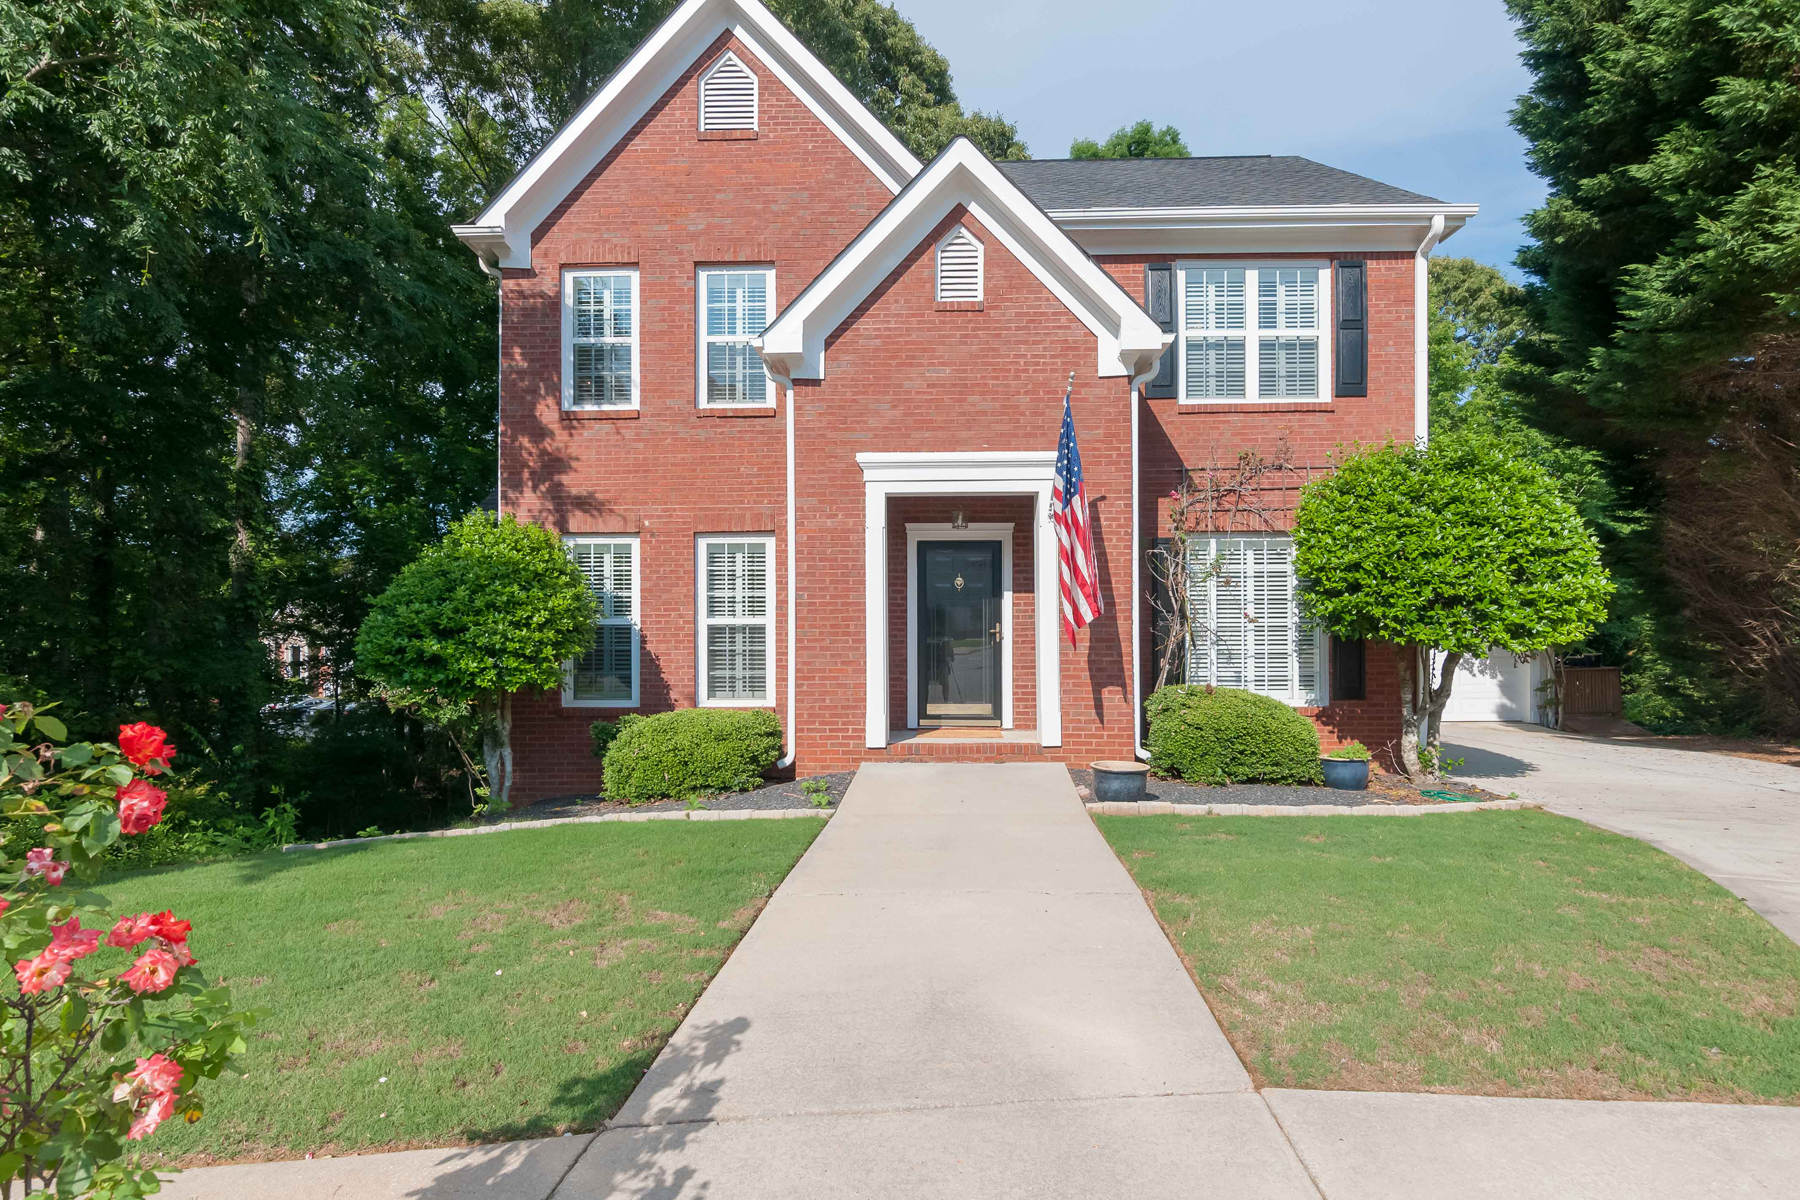 Single Family Home for Sale at Spacious Home Nestled In A Private Cul-de-sac Lot 114 Cottage Grove Peachtree City, Georgia 30269 United States